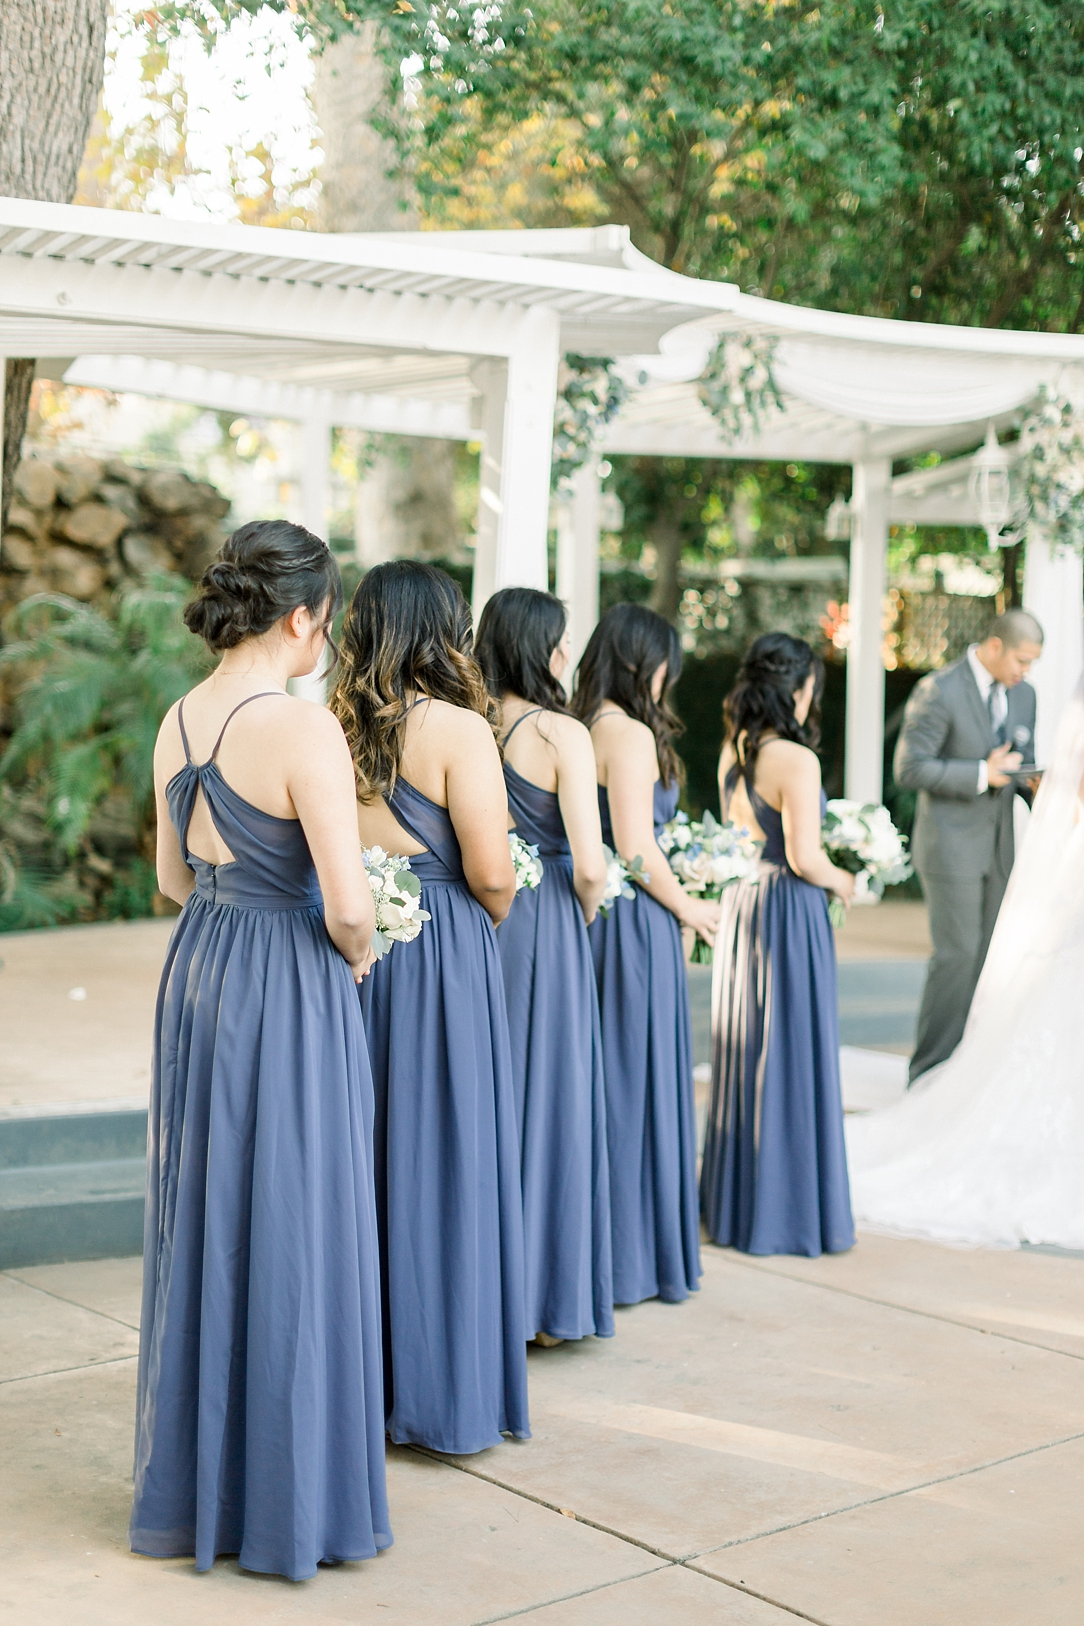 A Periwinkle Blue Inspired Wedding At Calamigos Equestrian In Burbank By Natural Light Photographer Madison Ellis. (25)